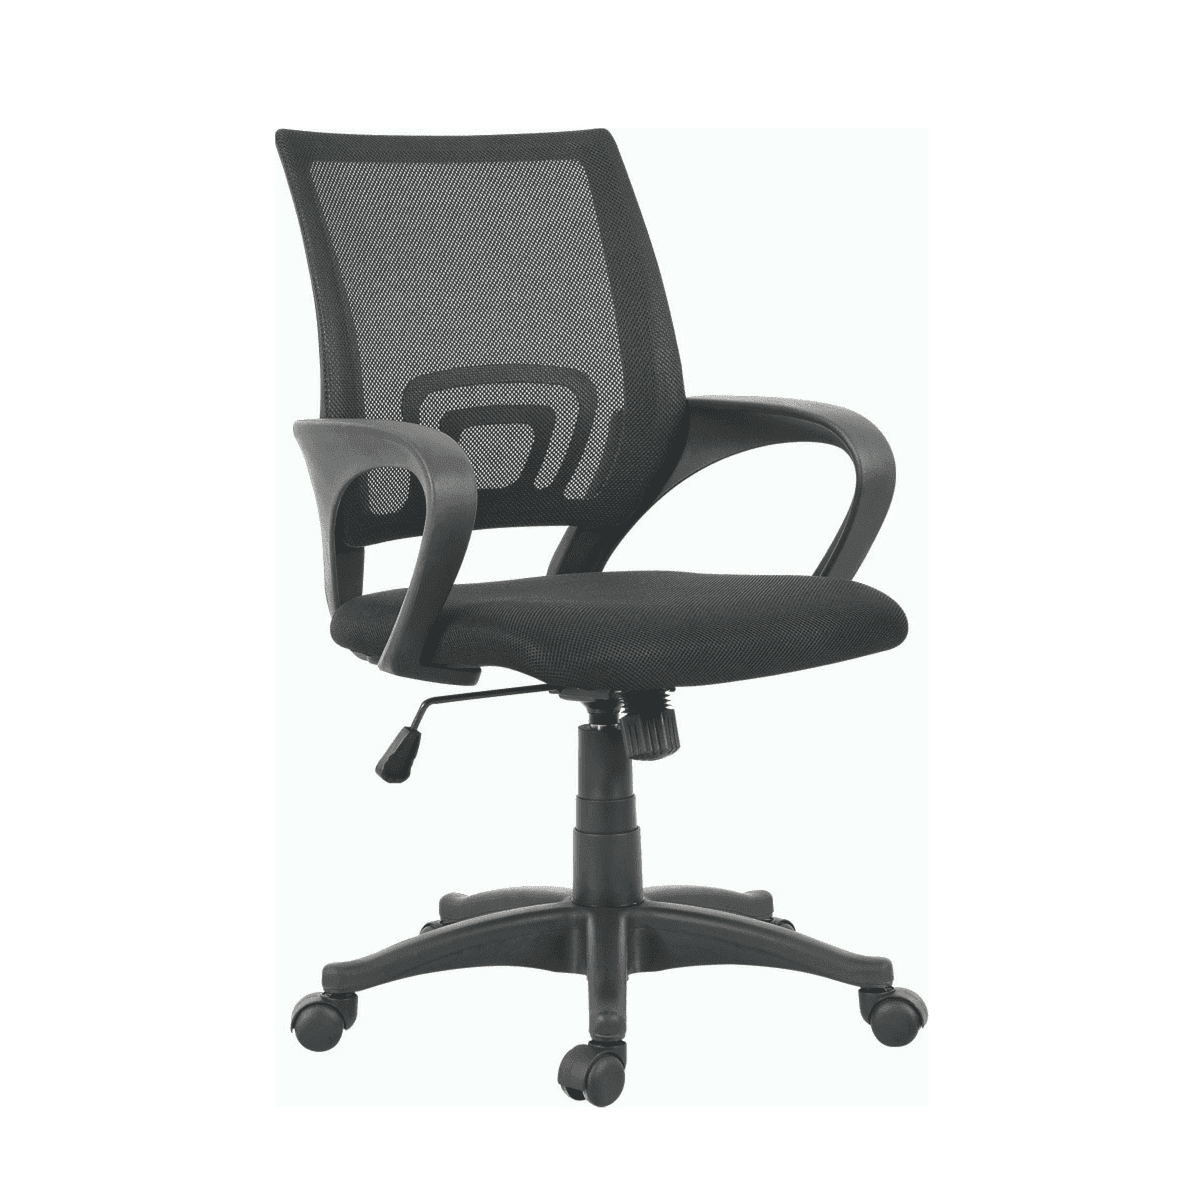 Markus Chair Markus Black Mesh Office Chair Corcorans Furniture And Carpets